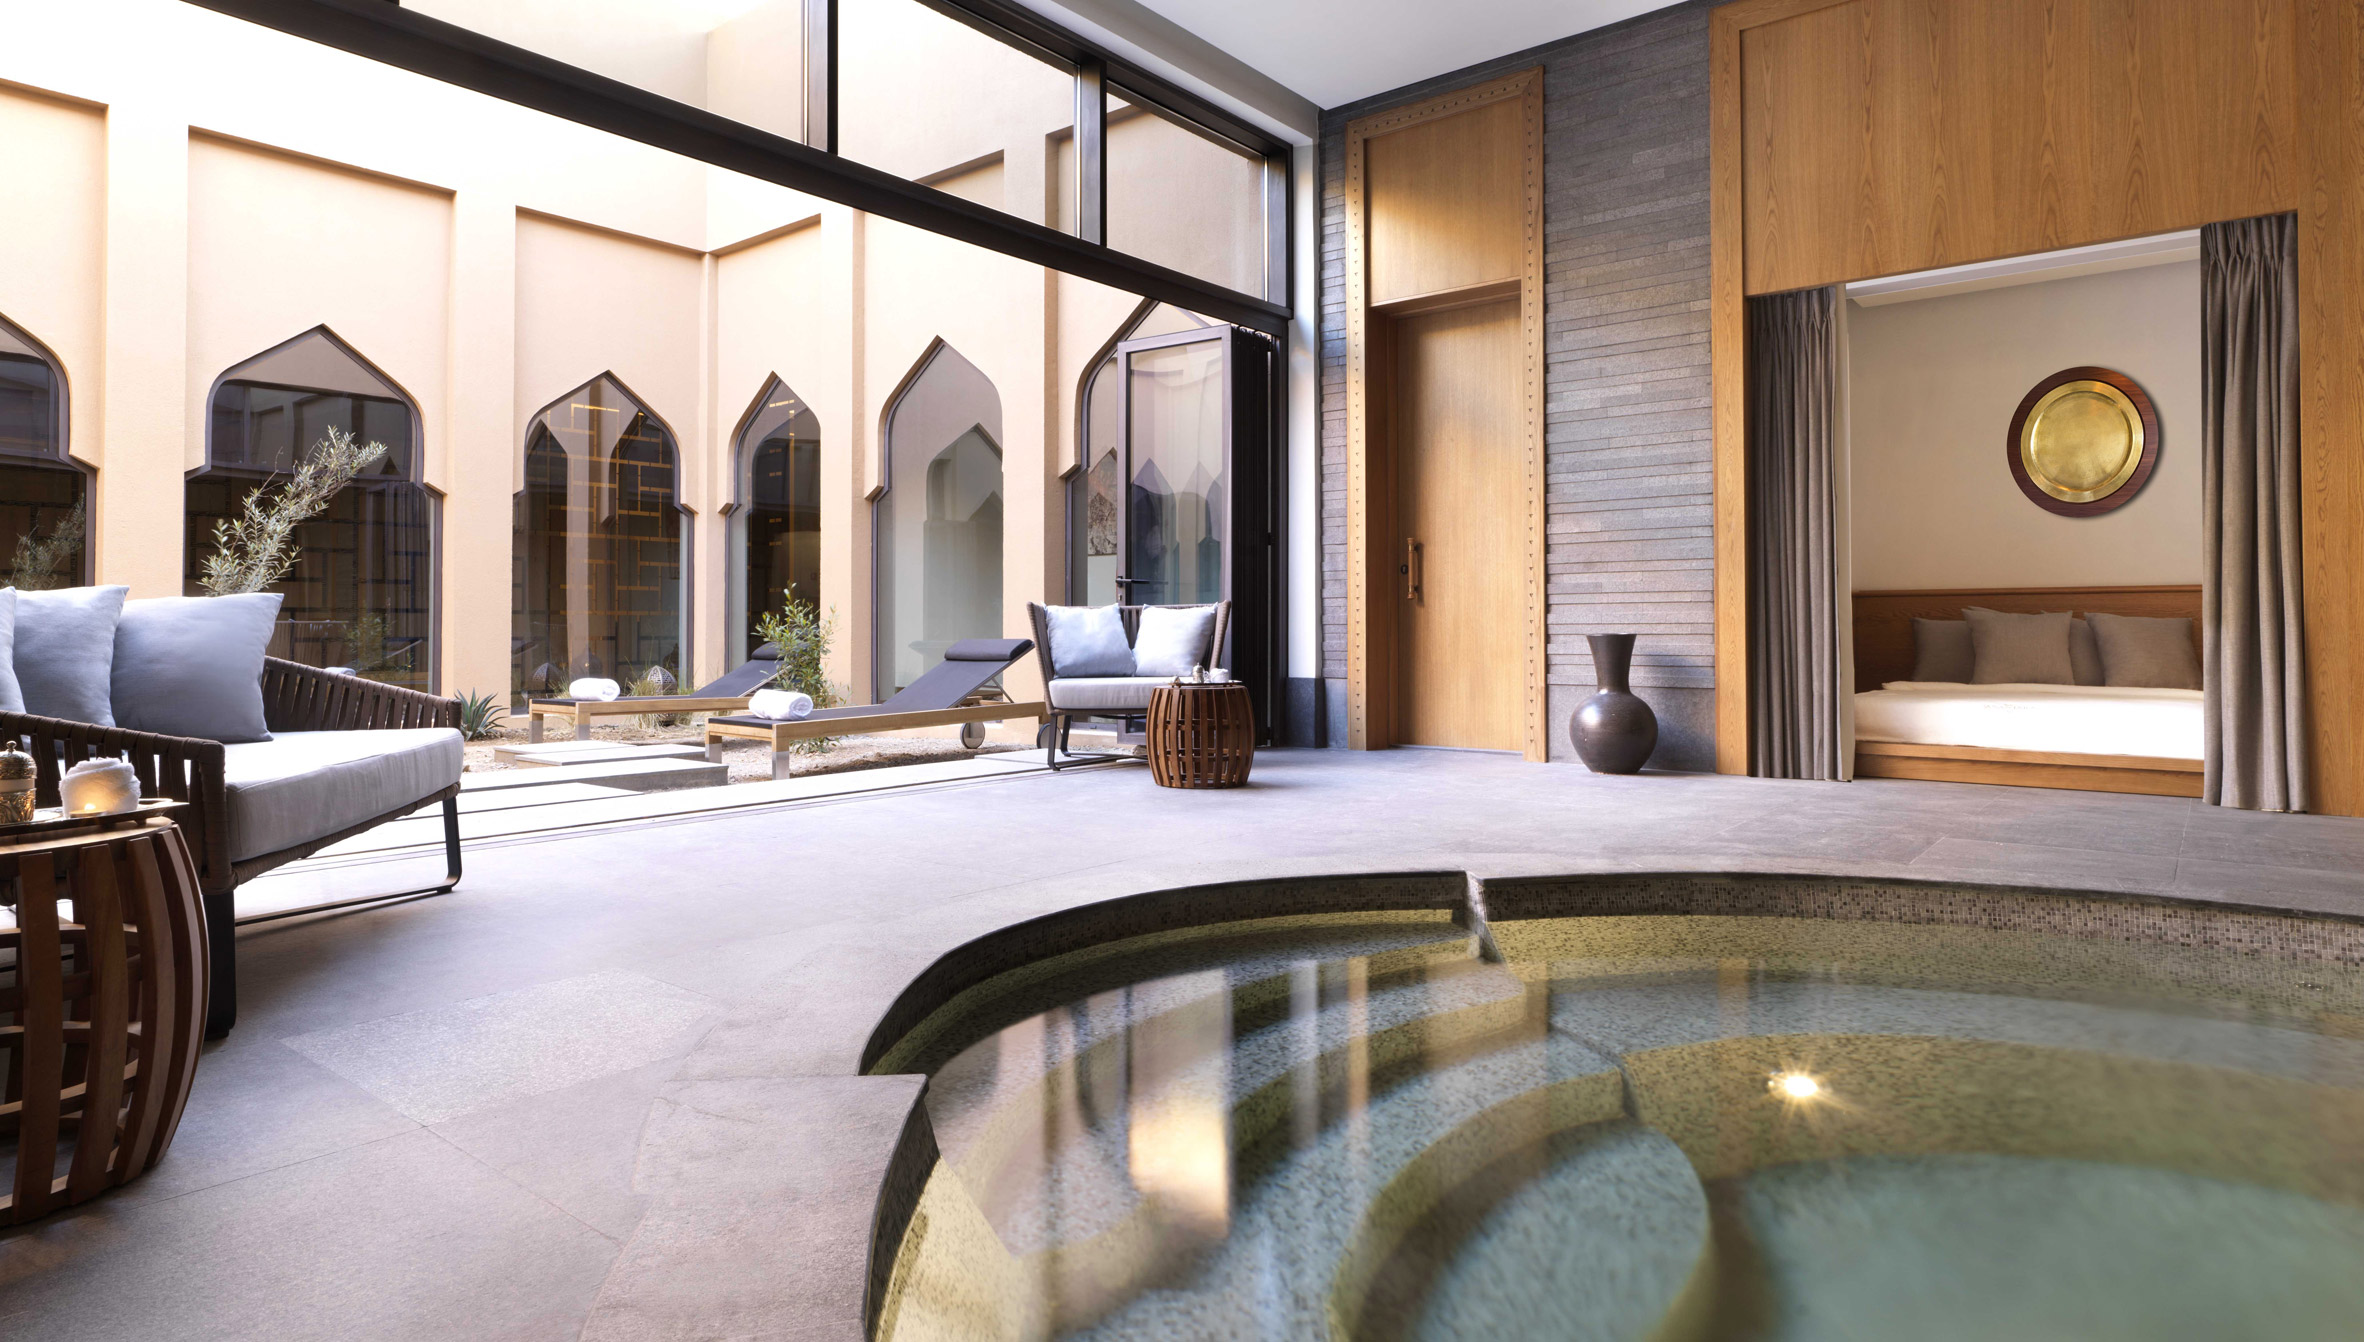 Four Seasons Hotel DIFC in Dubai designed as \